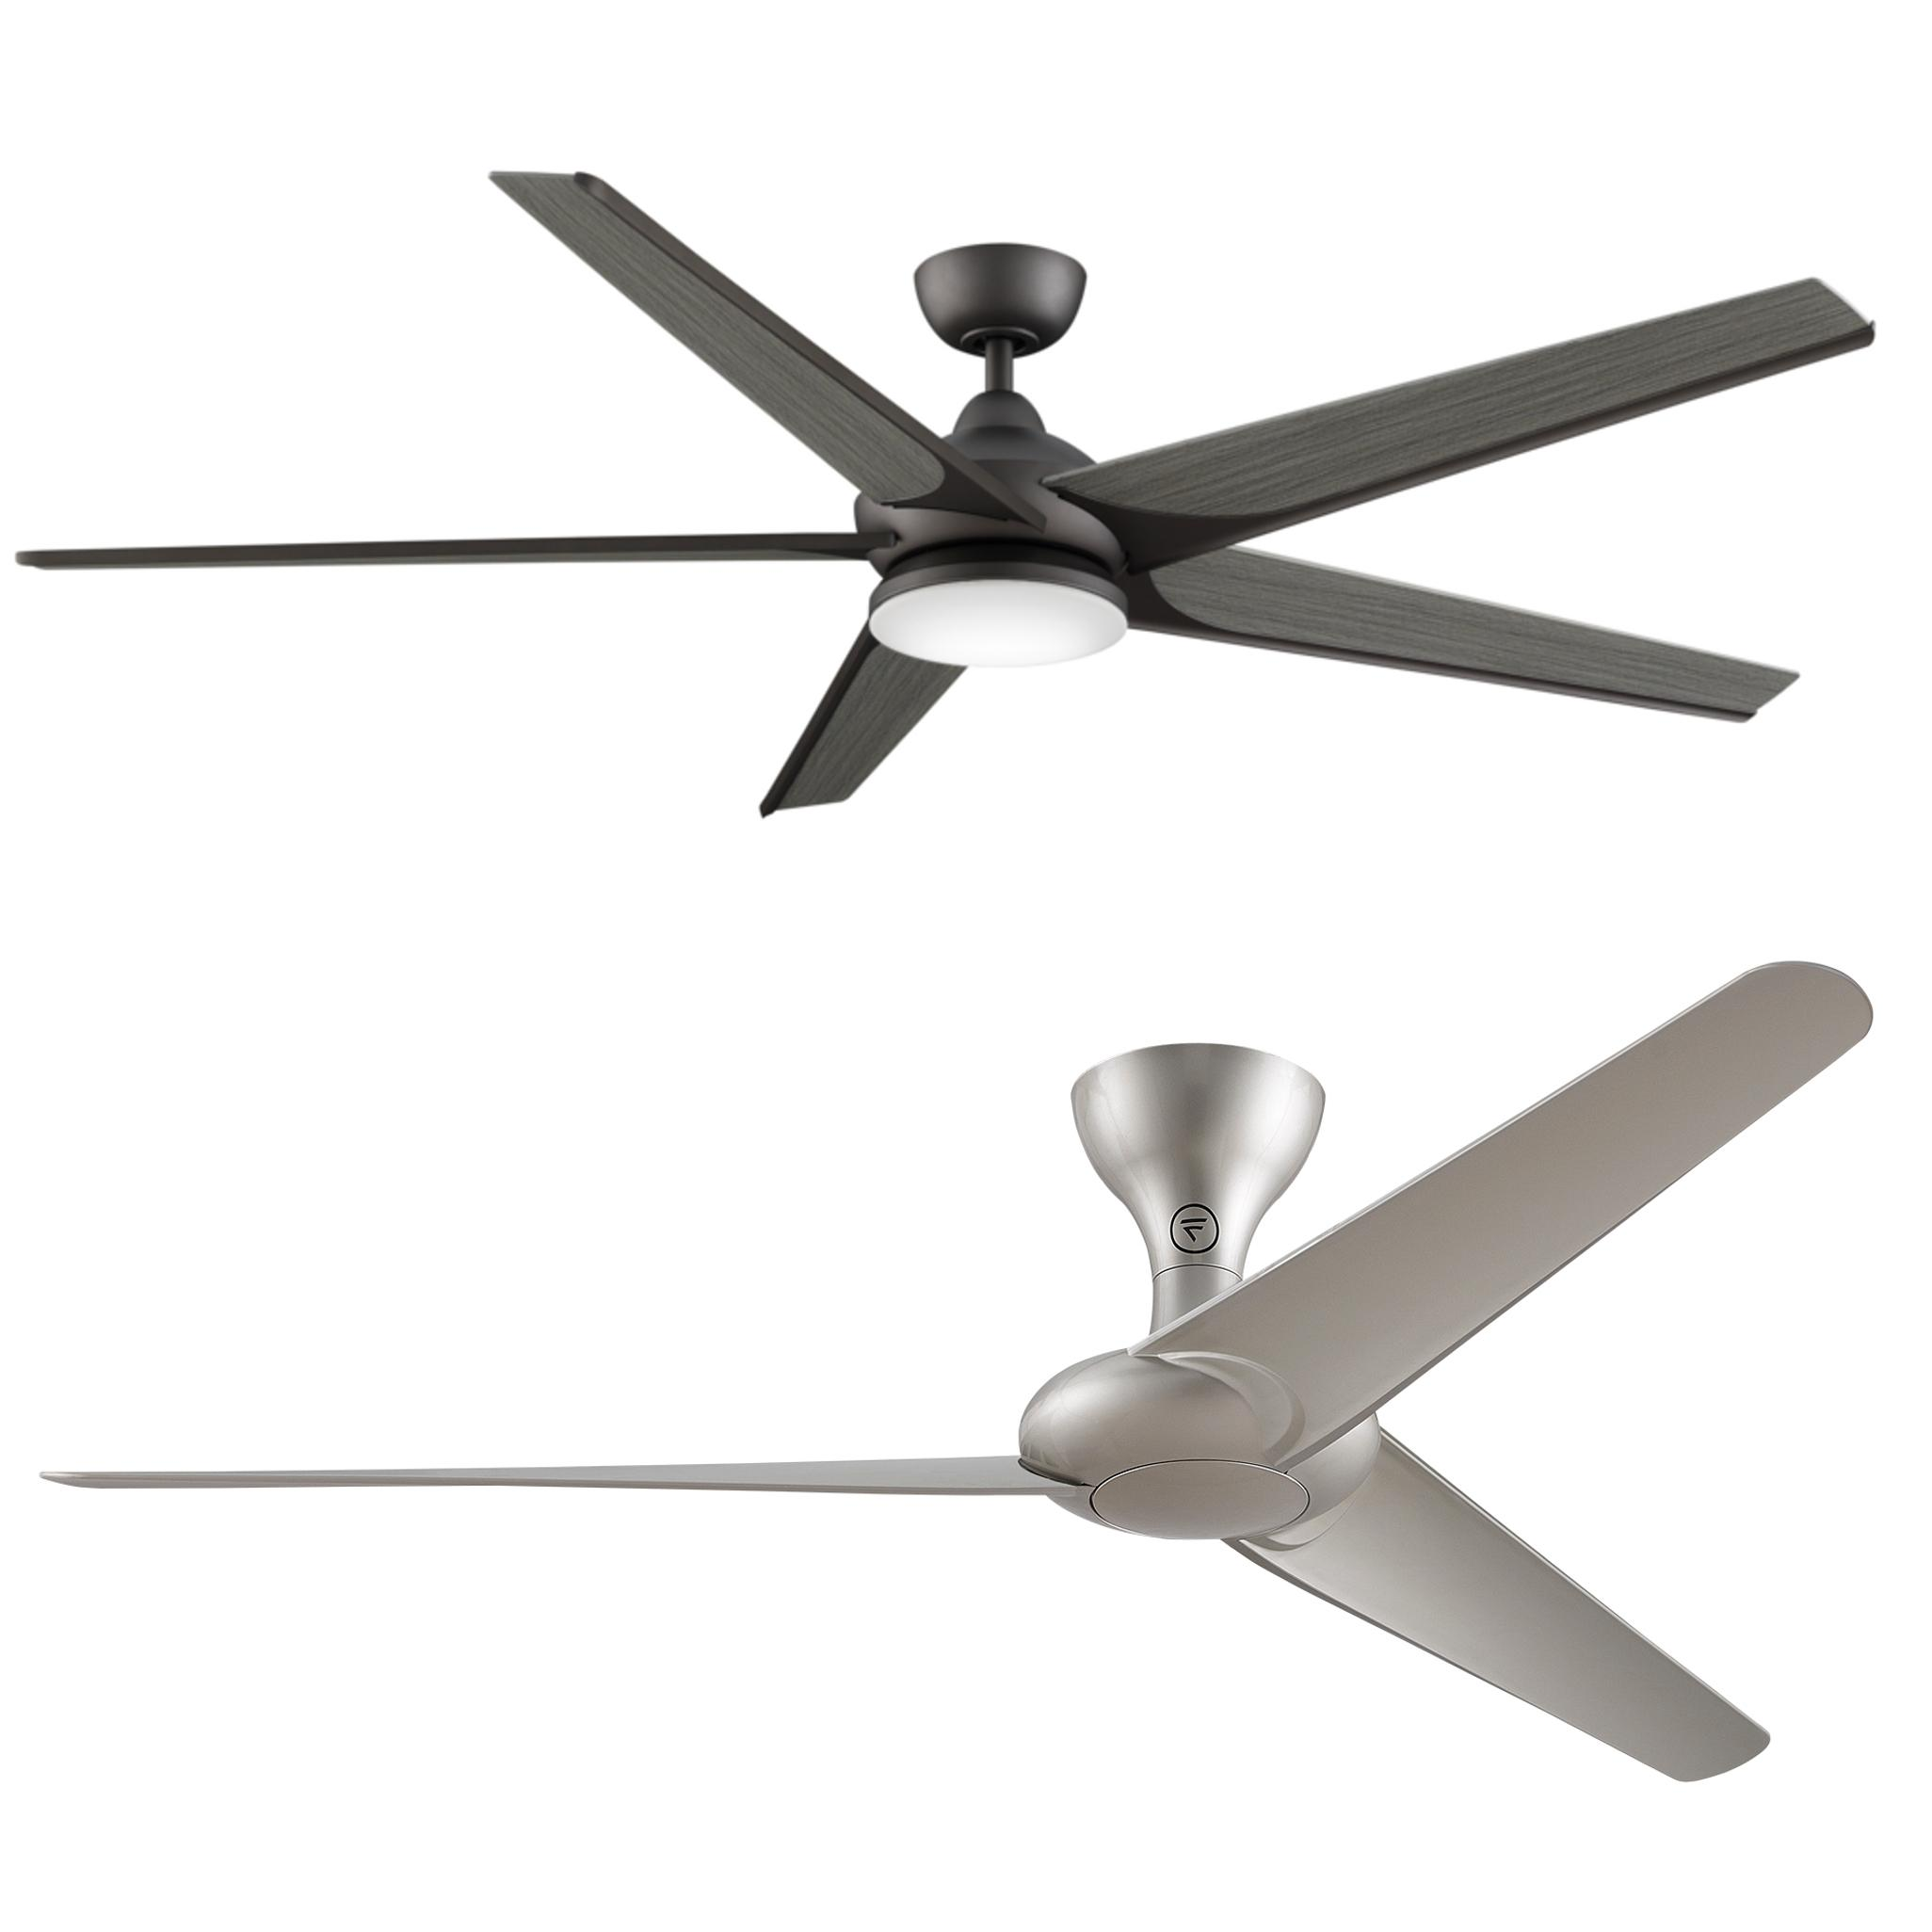 Fanimation FP7900MG Torto Ceiling Fan Metro Gray Finish